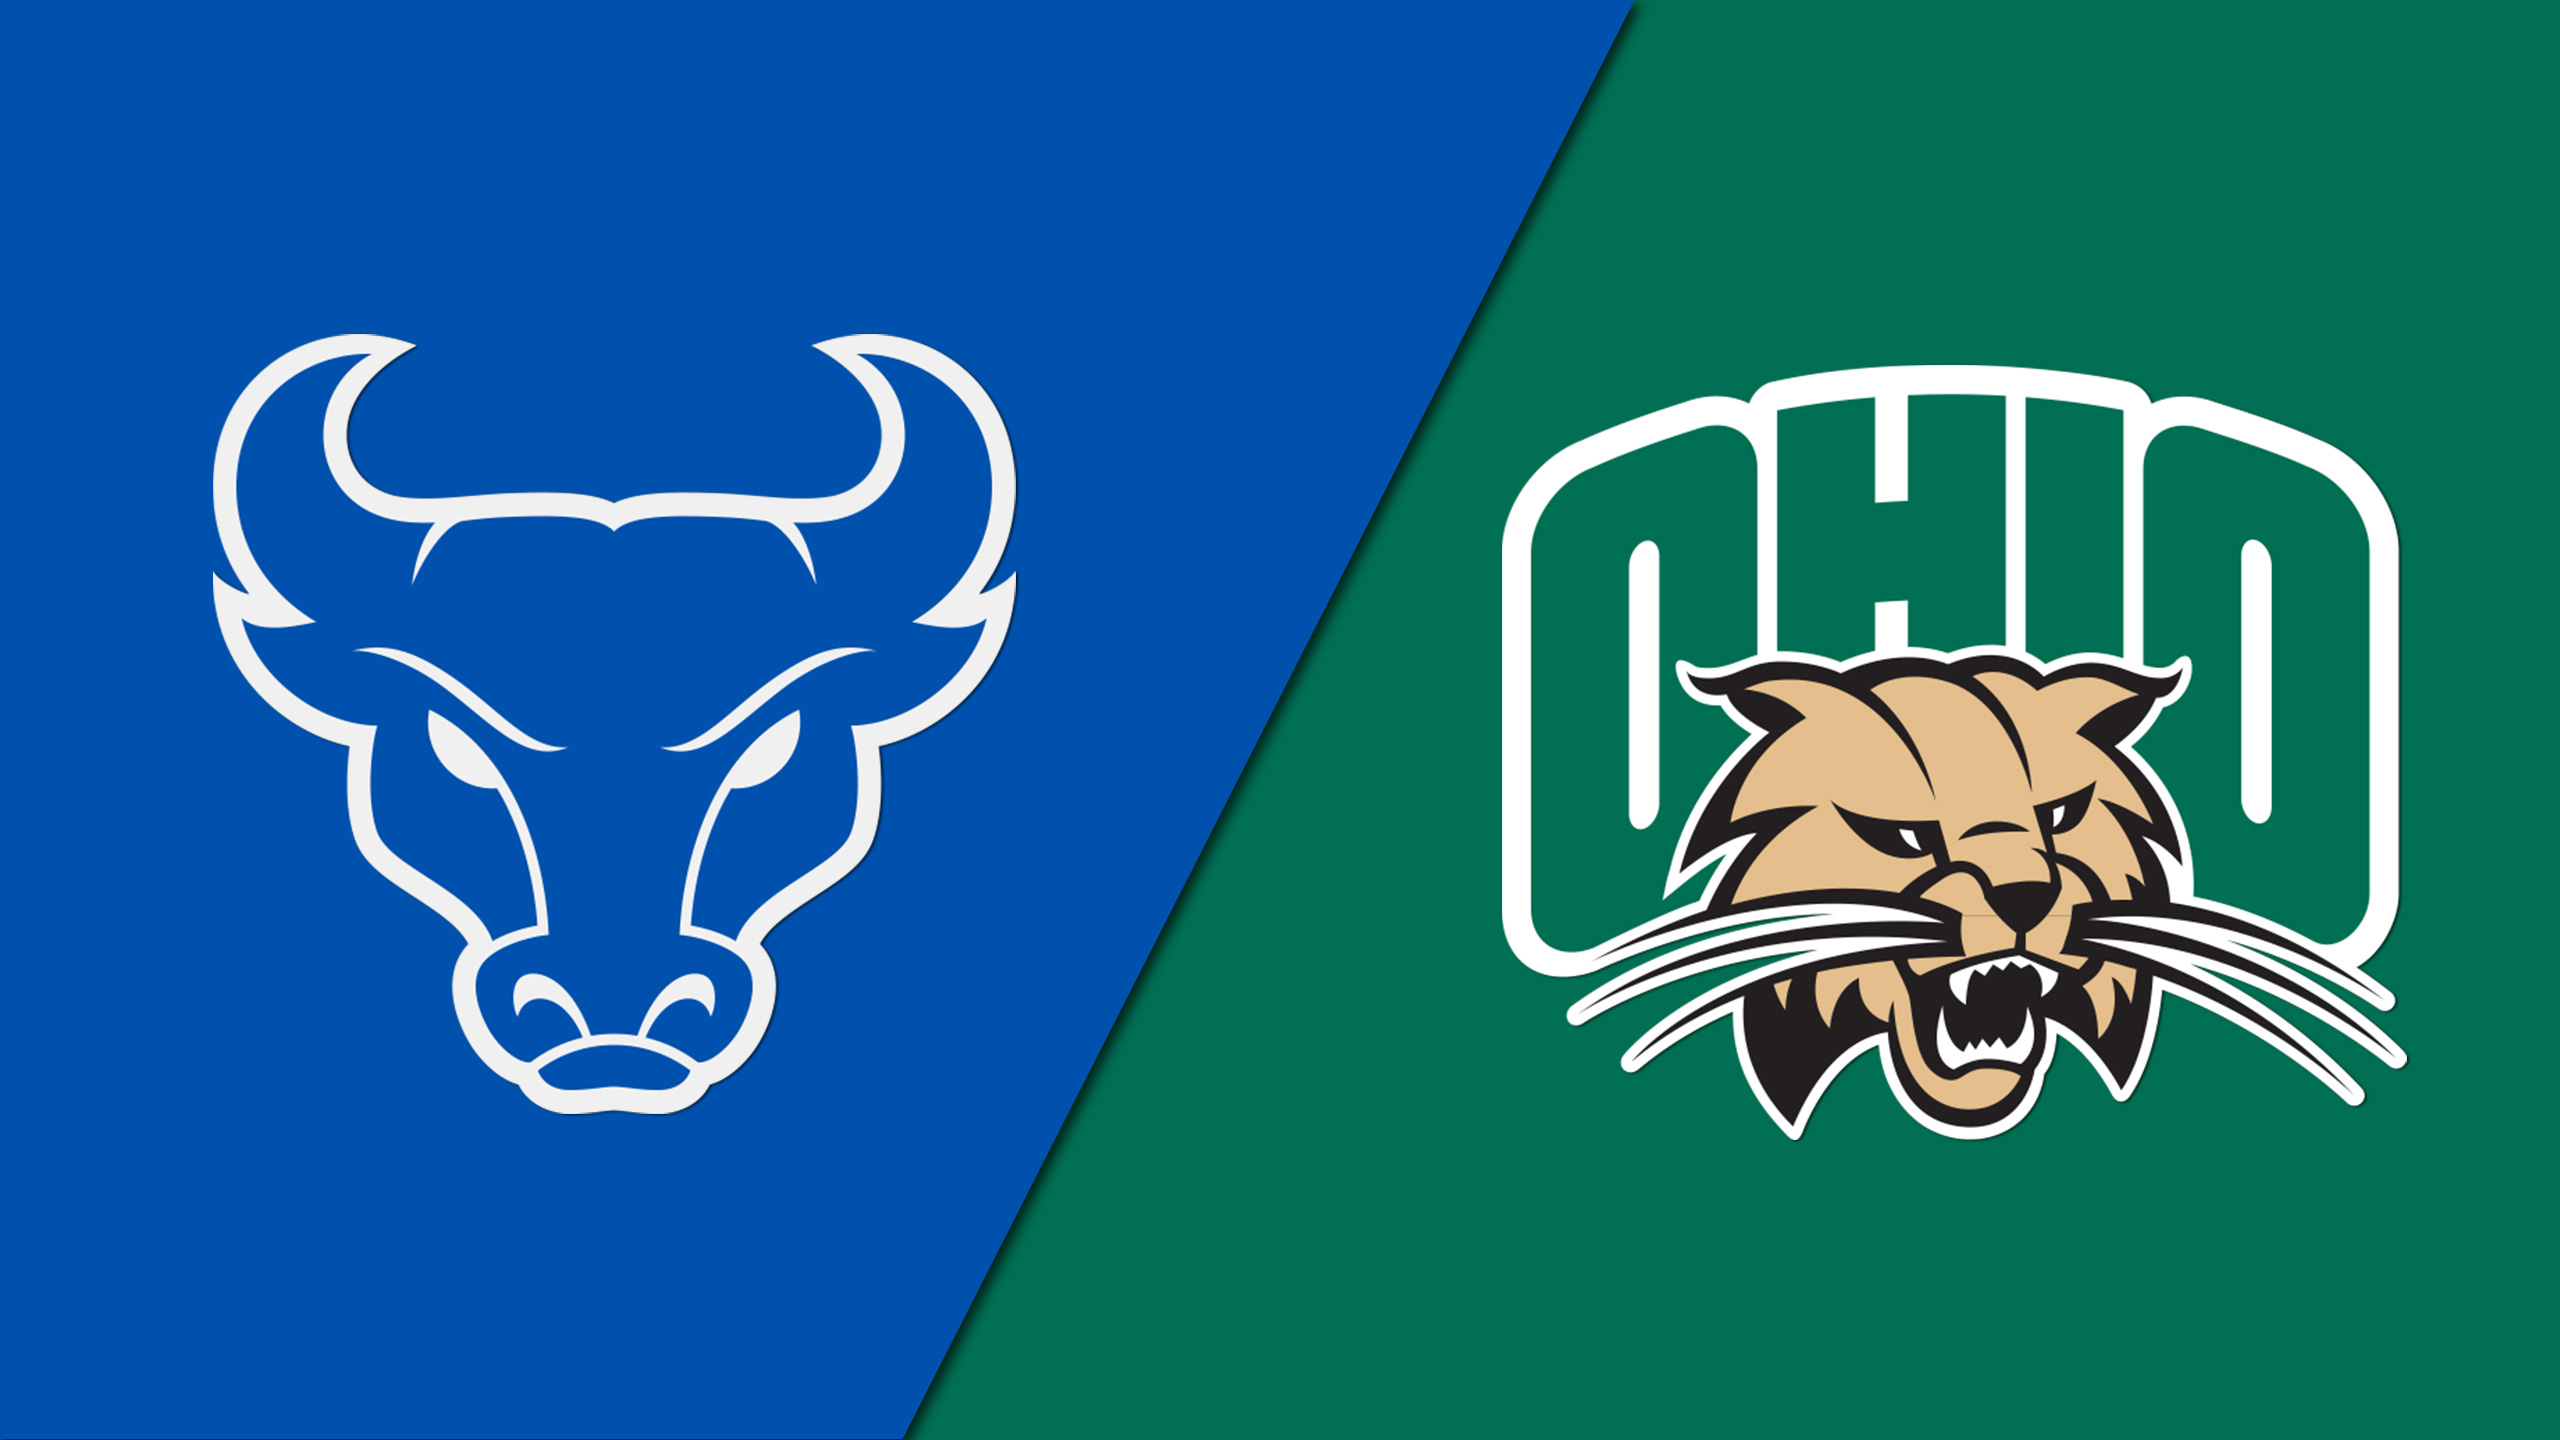 Buffalo vs. Ohio (Football) (re-air)